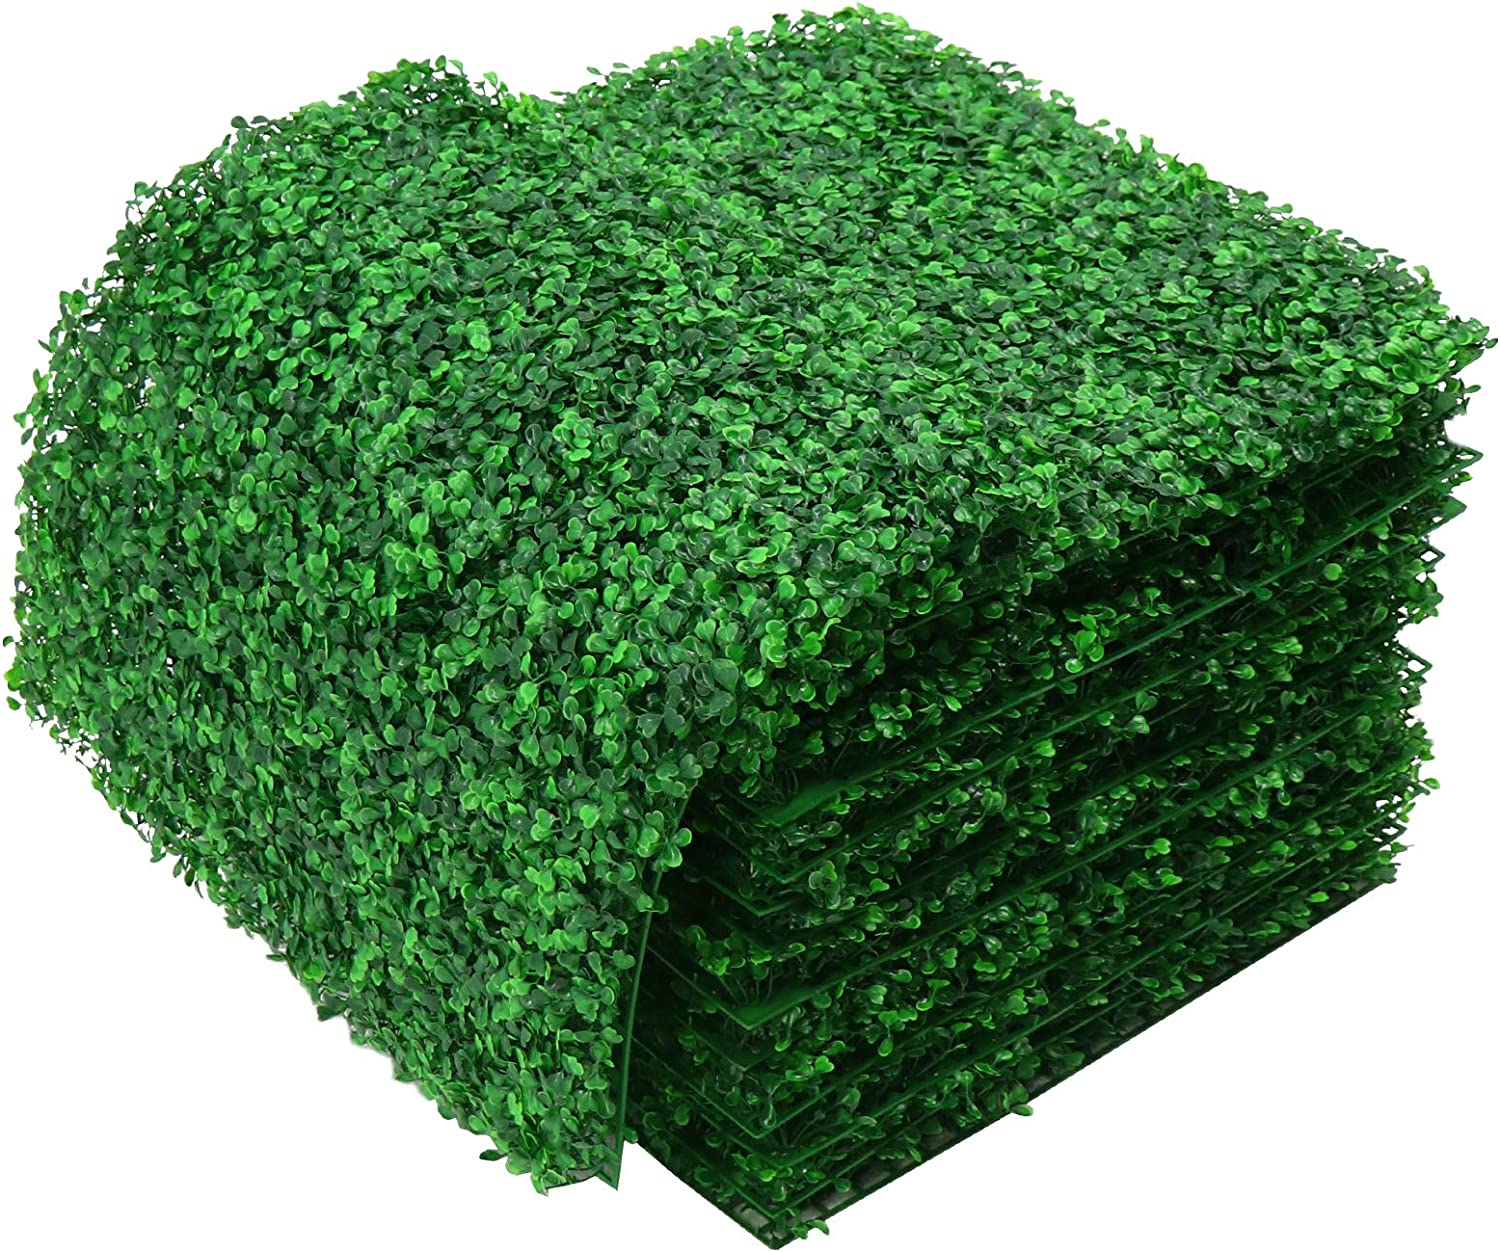 DQS Artificial Boxwood Panels - 12 Pieces of Faux Hedge Wall Backdrop, 24 x 16 Inch Green Boxwood Wall Mat for Outdoor, Balcony, Garden Fence Screen and Indoor Wall Decoration (24 pcs - 20x20 inch)